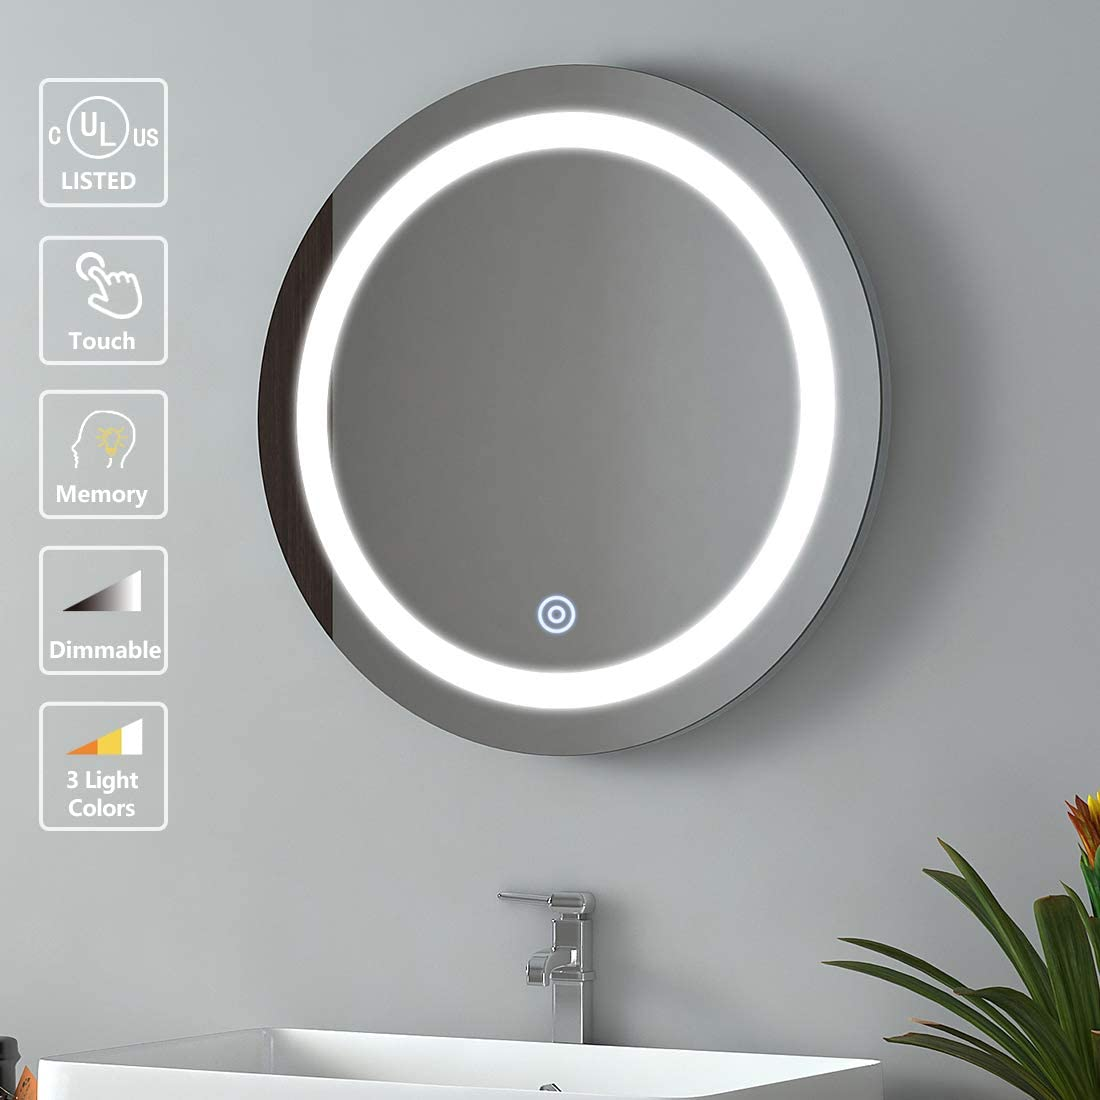 EMKE LED Bathroom Mirror 24 Inch Round Wall Mounted Vanity Mirror with Light, Smart Touch Switch and Dimmable Brightness Memory Makeup Mirror,Waterproof IP44 and UL Listed